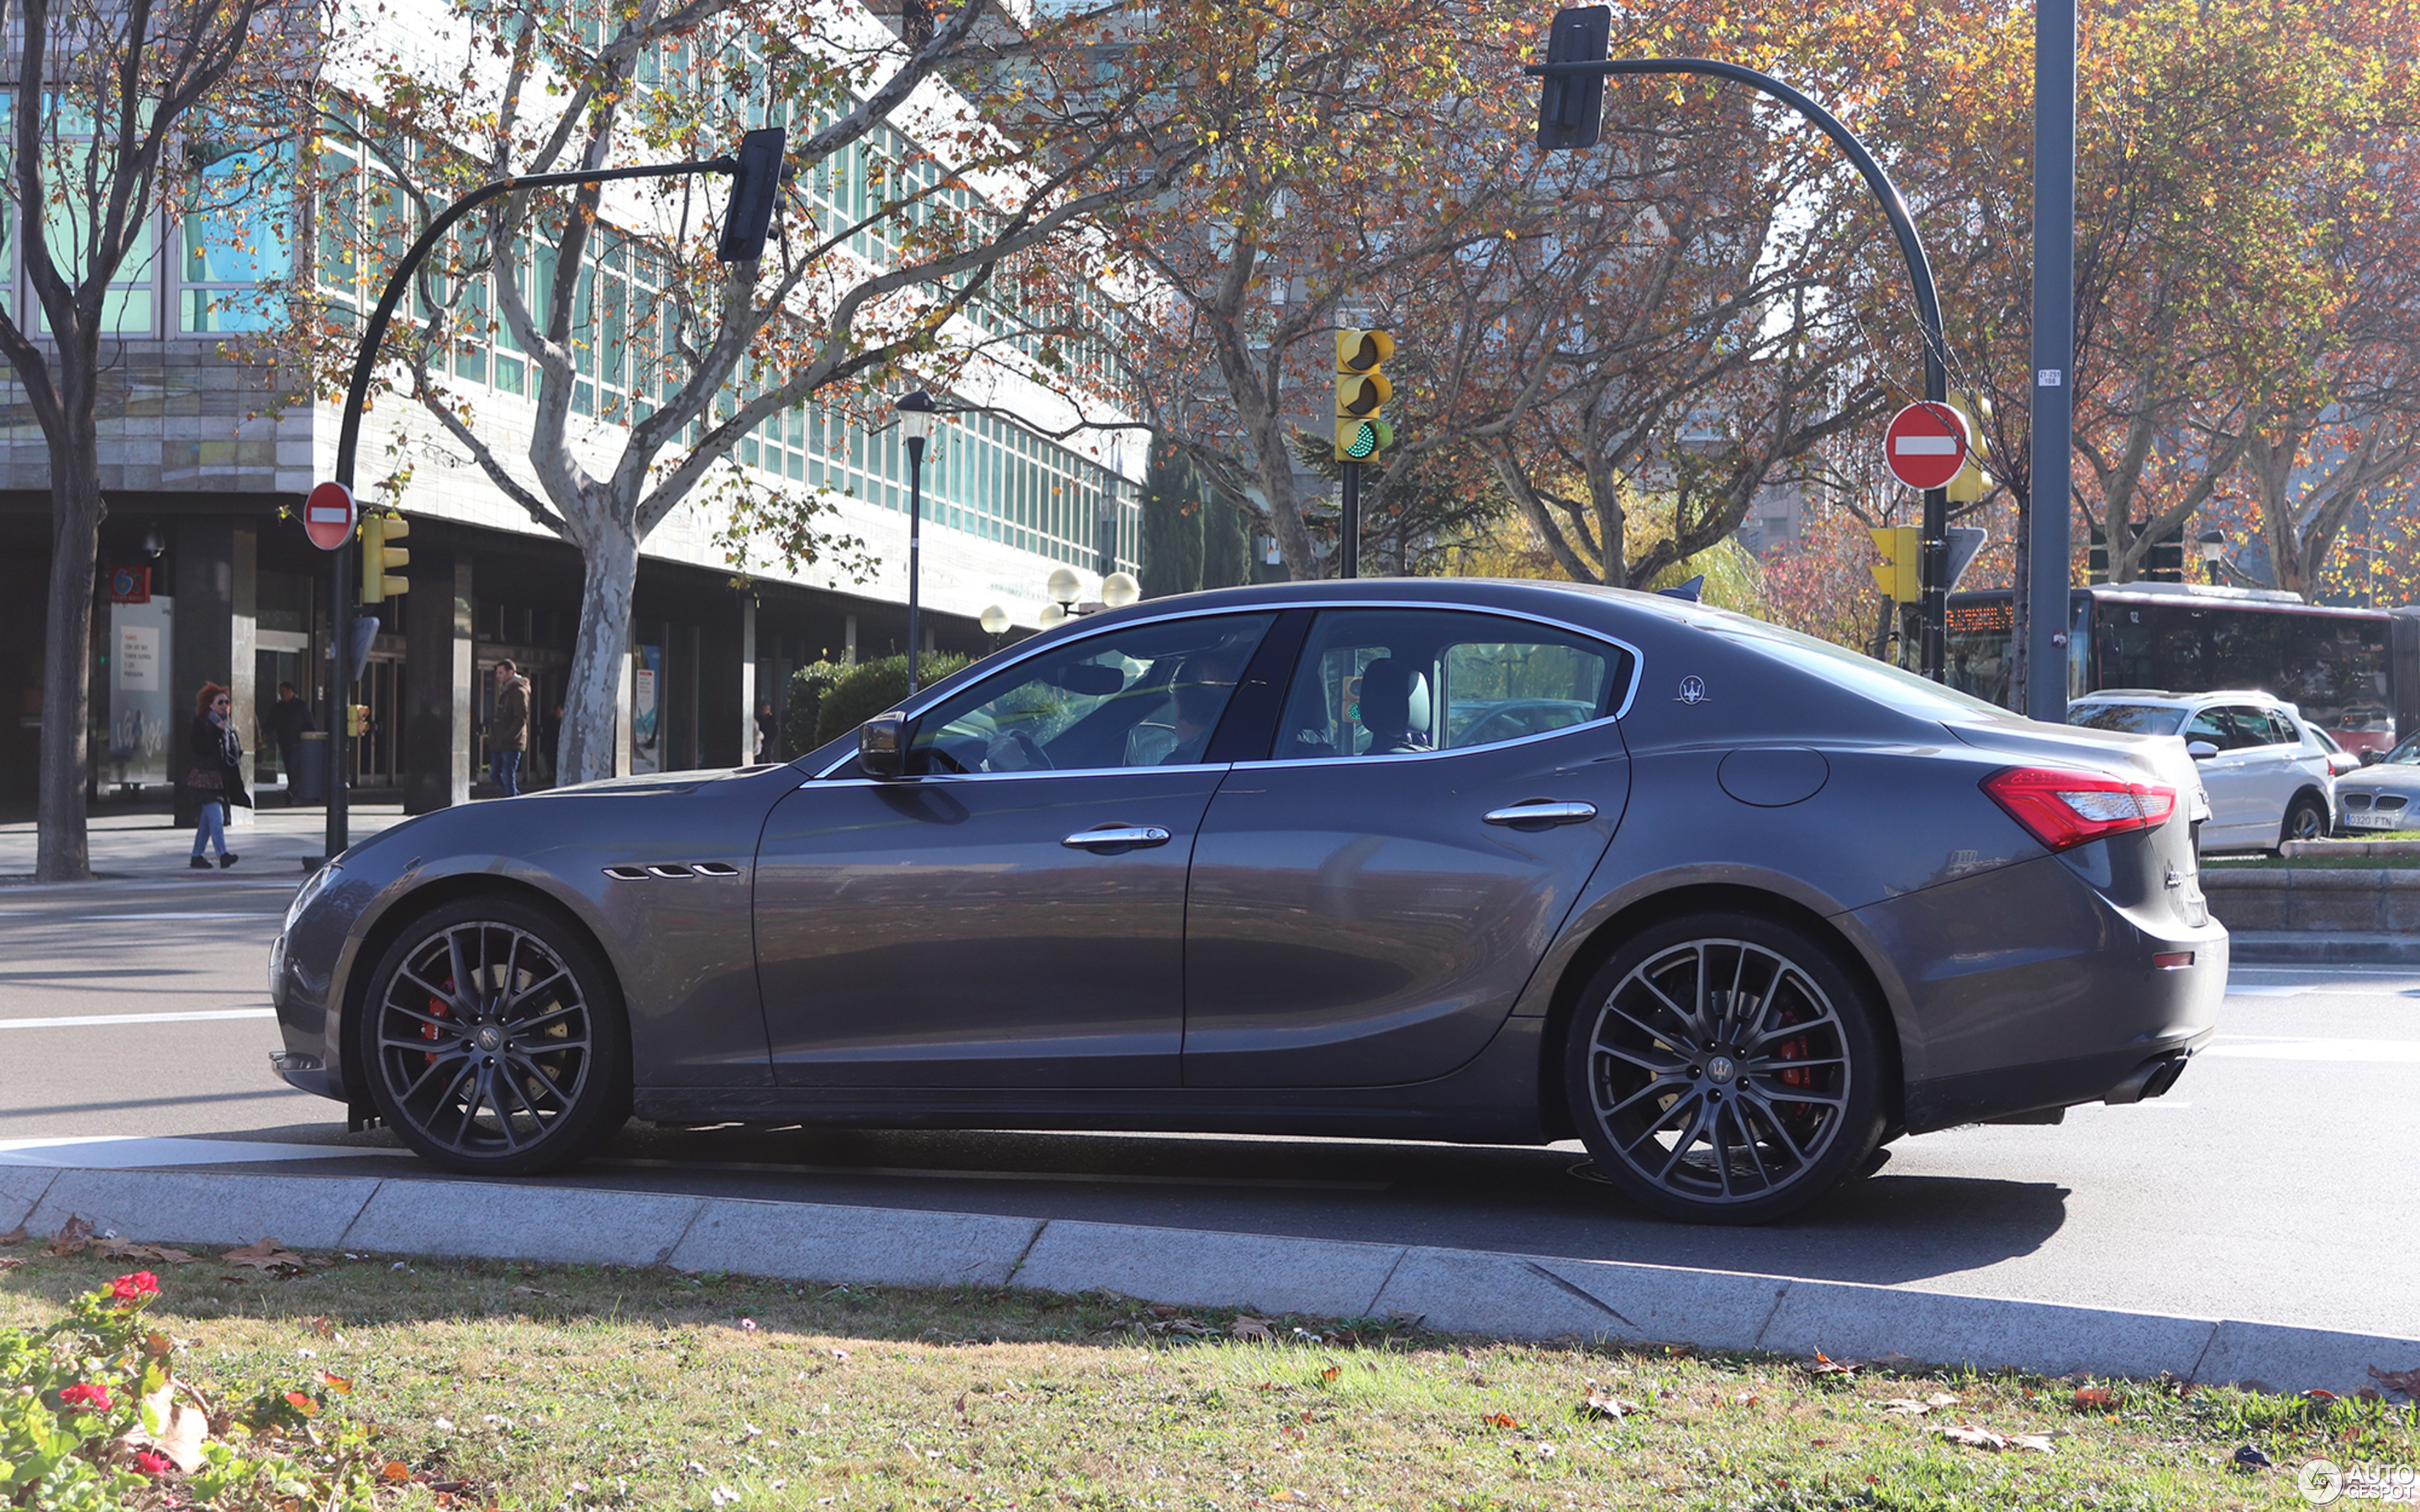 Maserati Ghibli S Q4 2013 6 January 2019 Autogespot